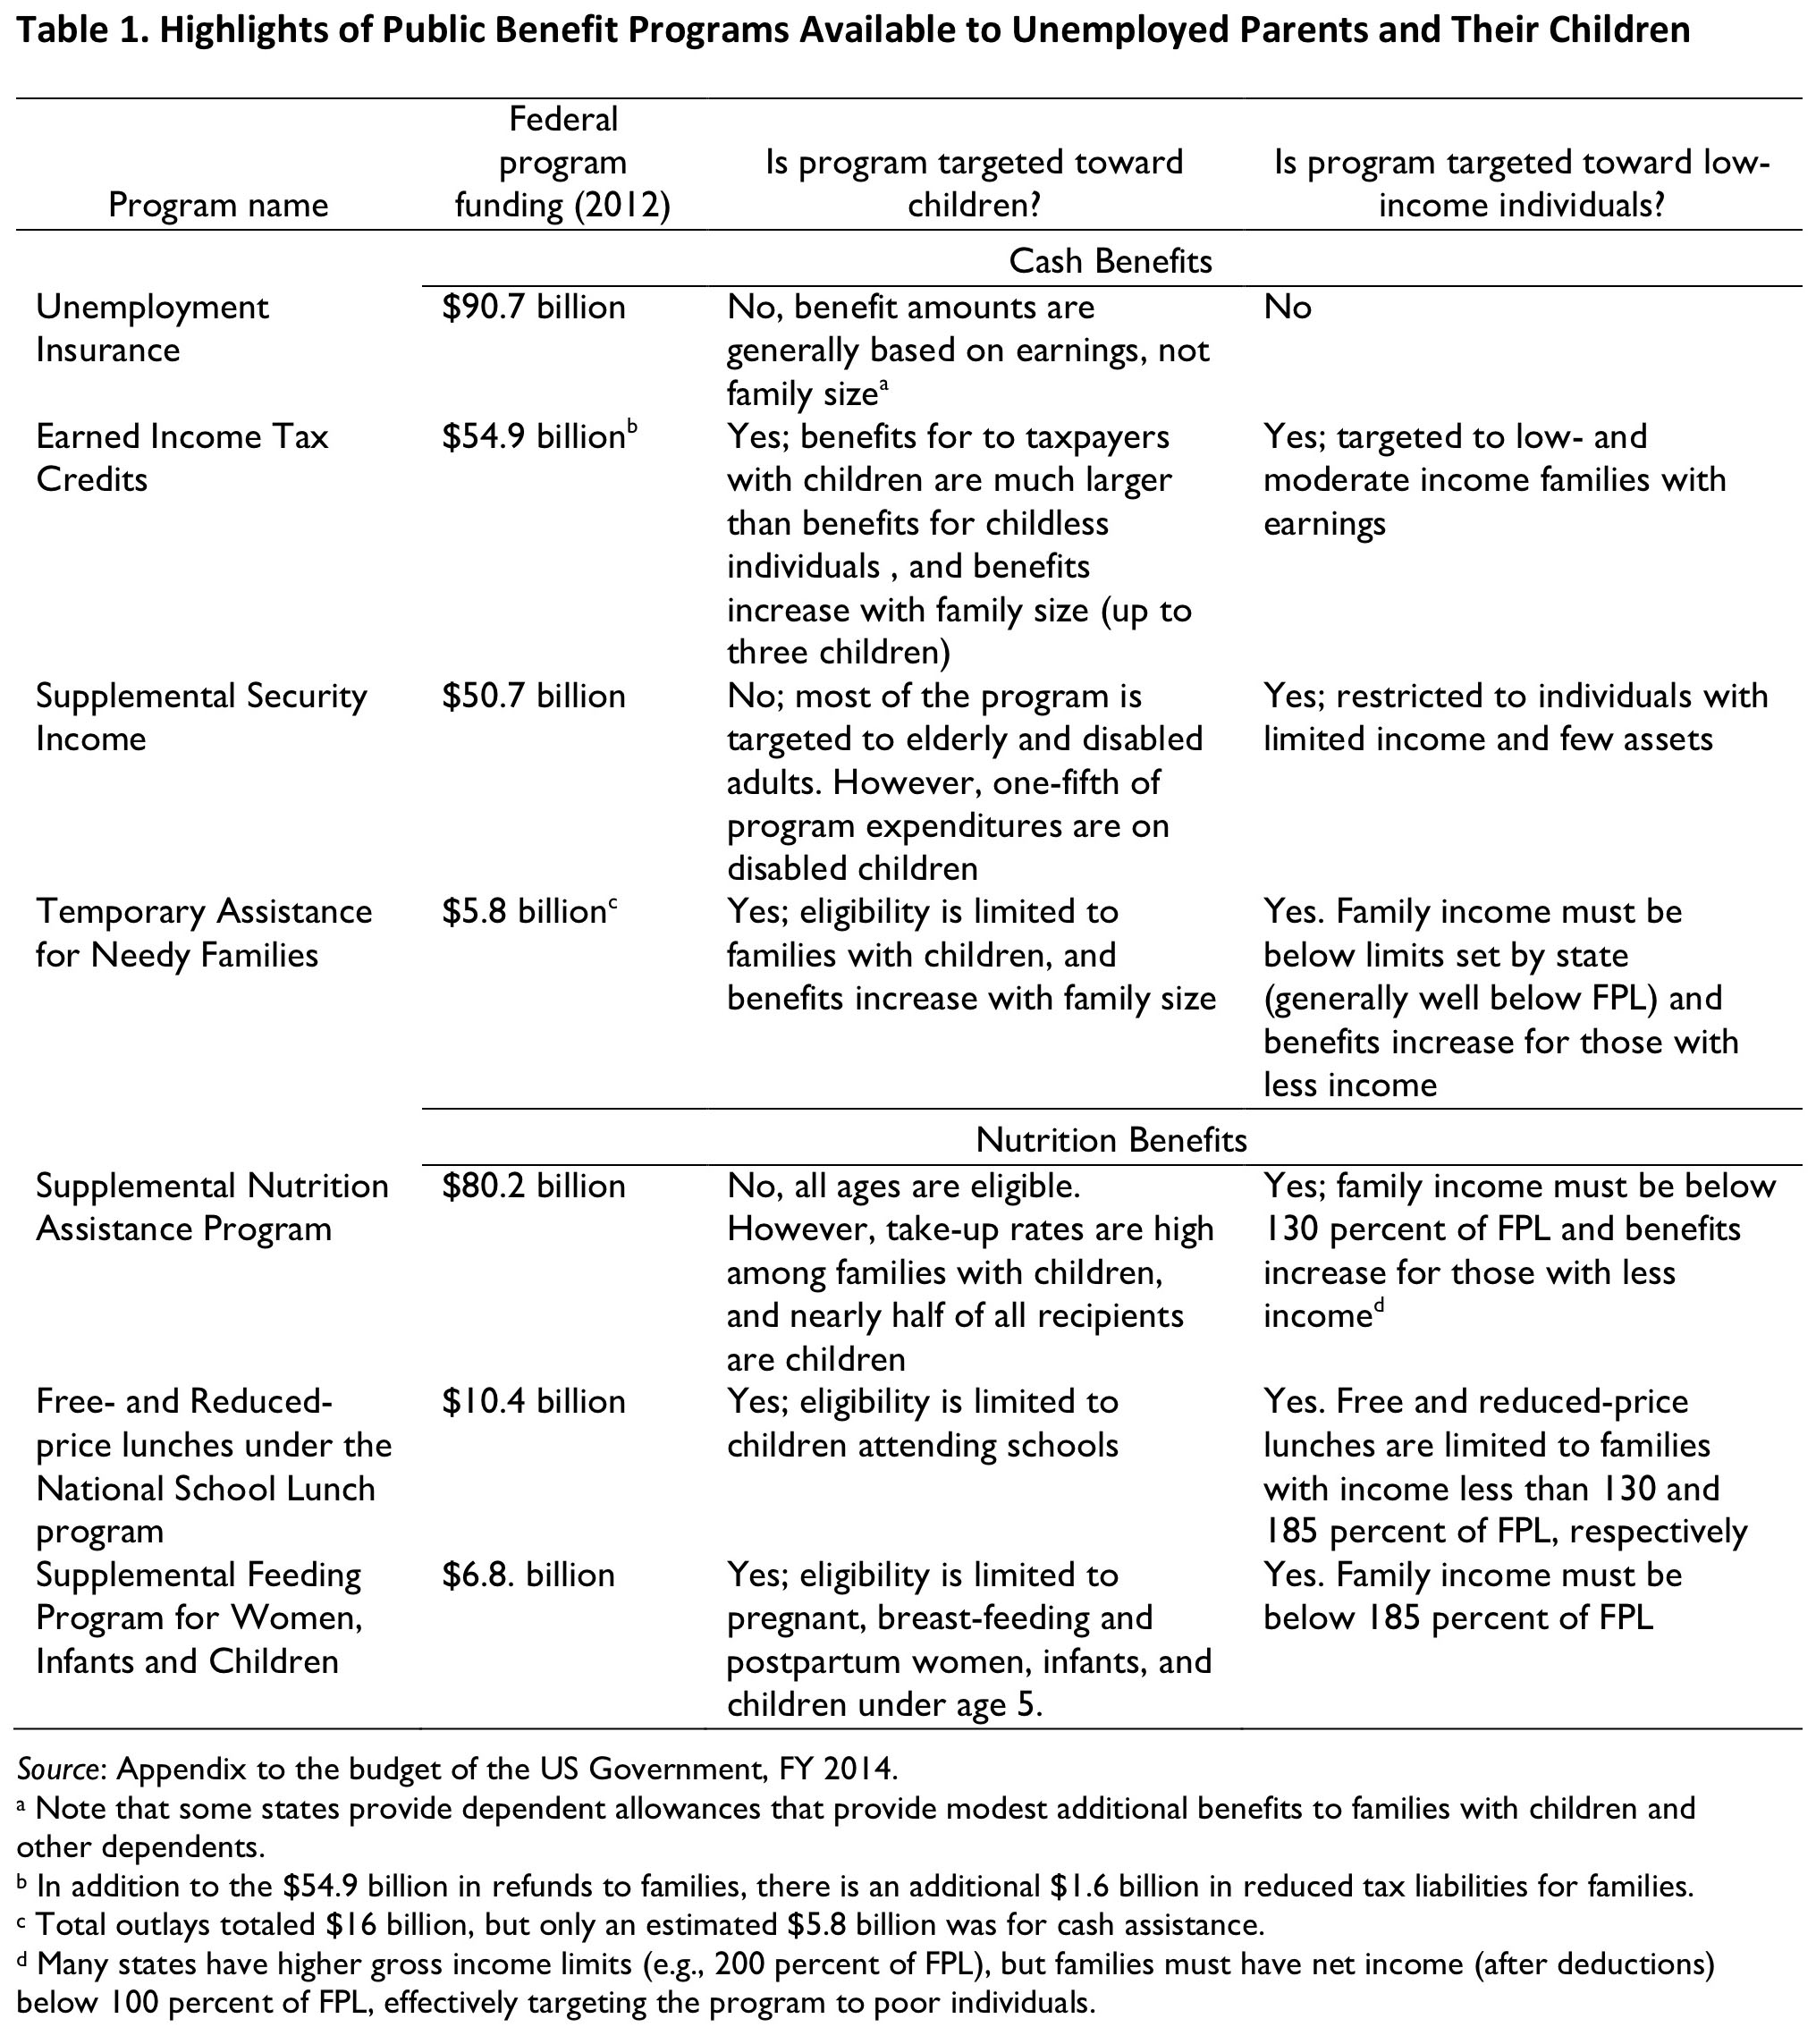 Table 1. Highlights of Public Benefit Programs Available to Unemployed Parents and Their Children